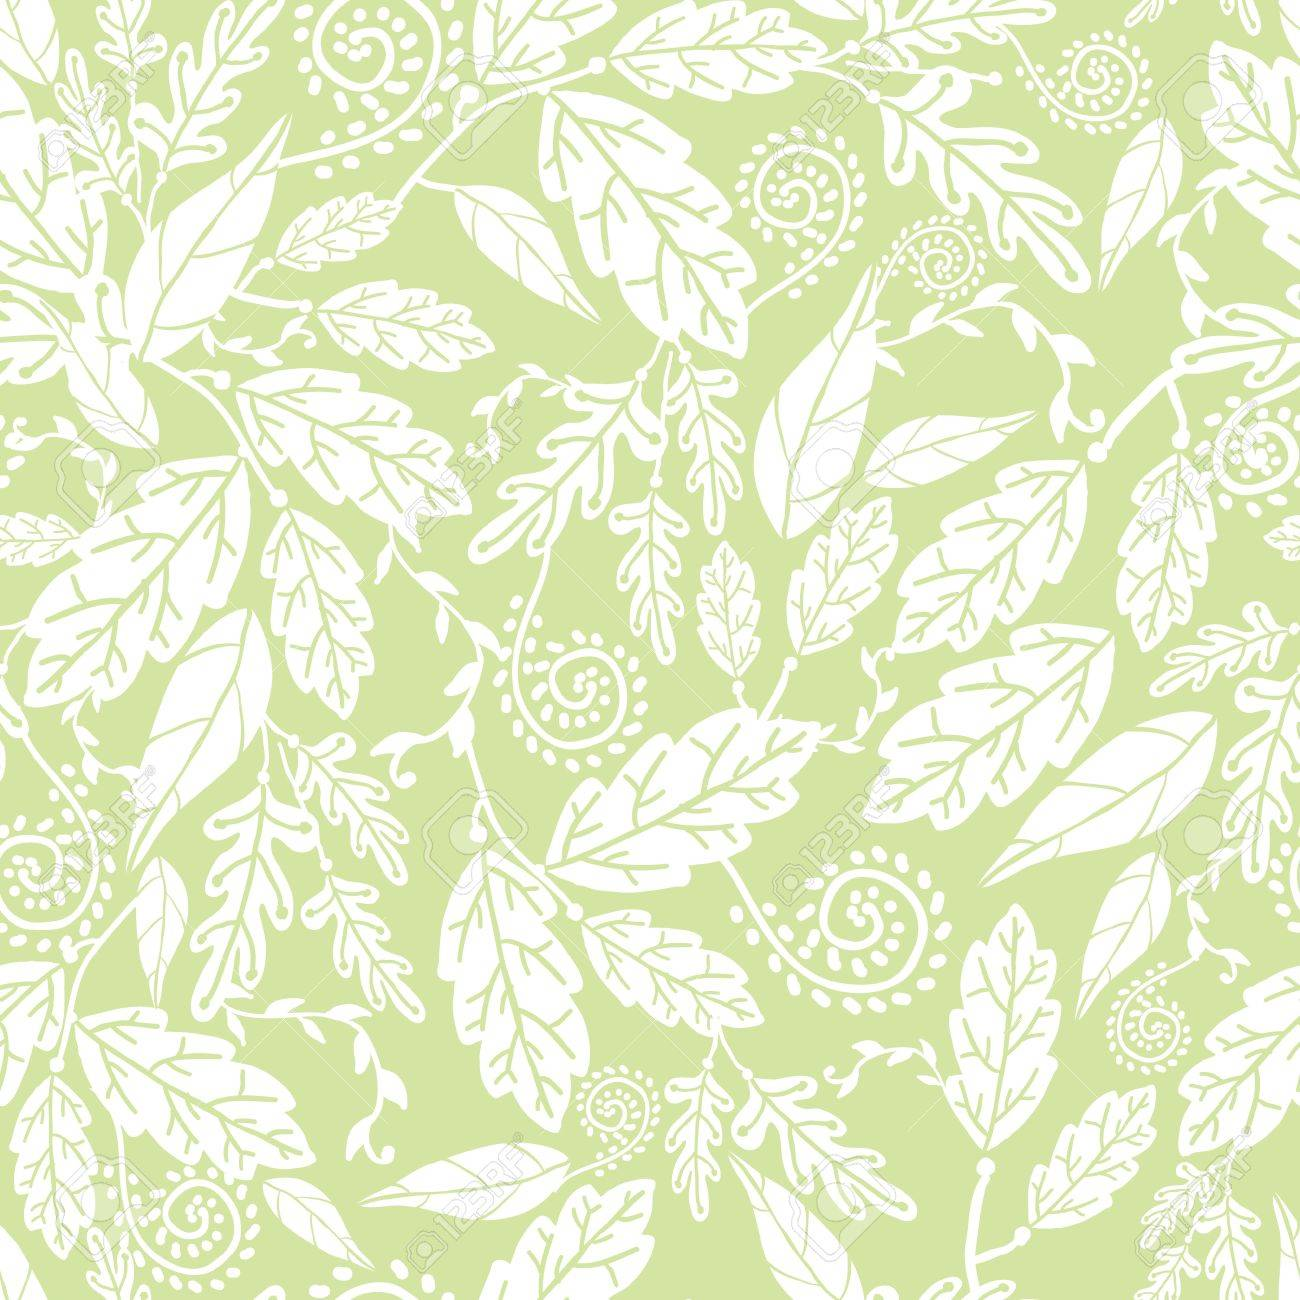 Green and white Leaves Seamless Pattern Background Stock Vector - 16675679